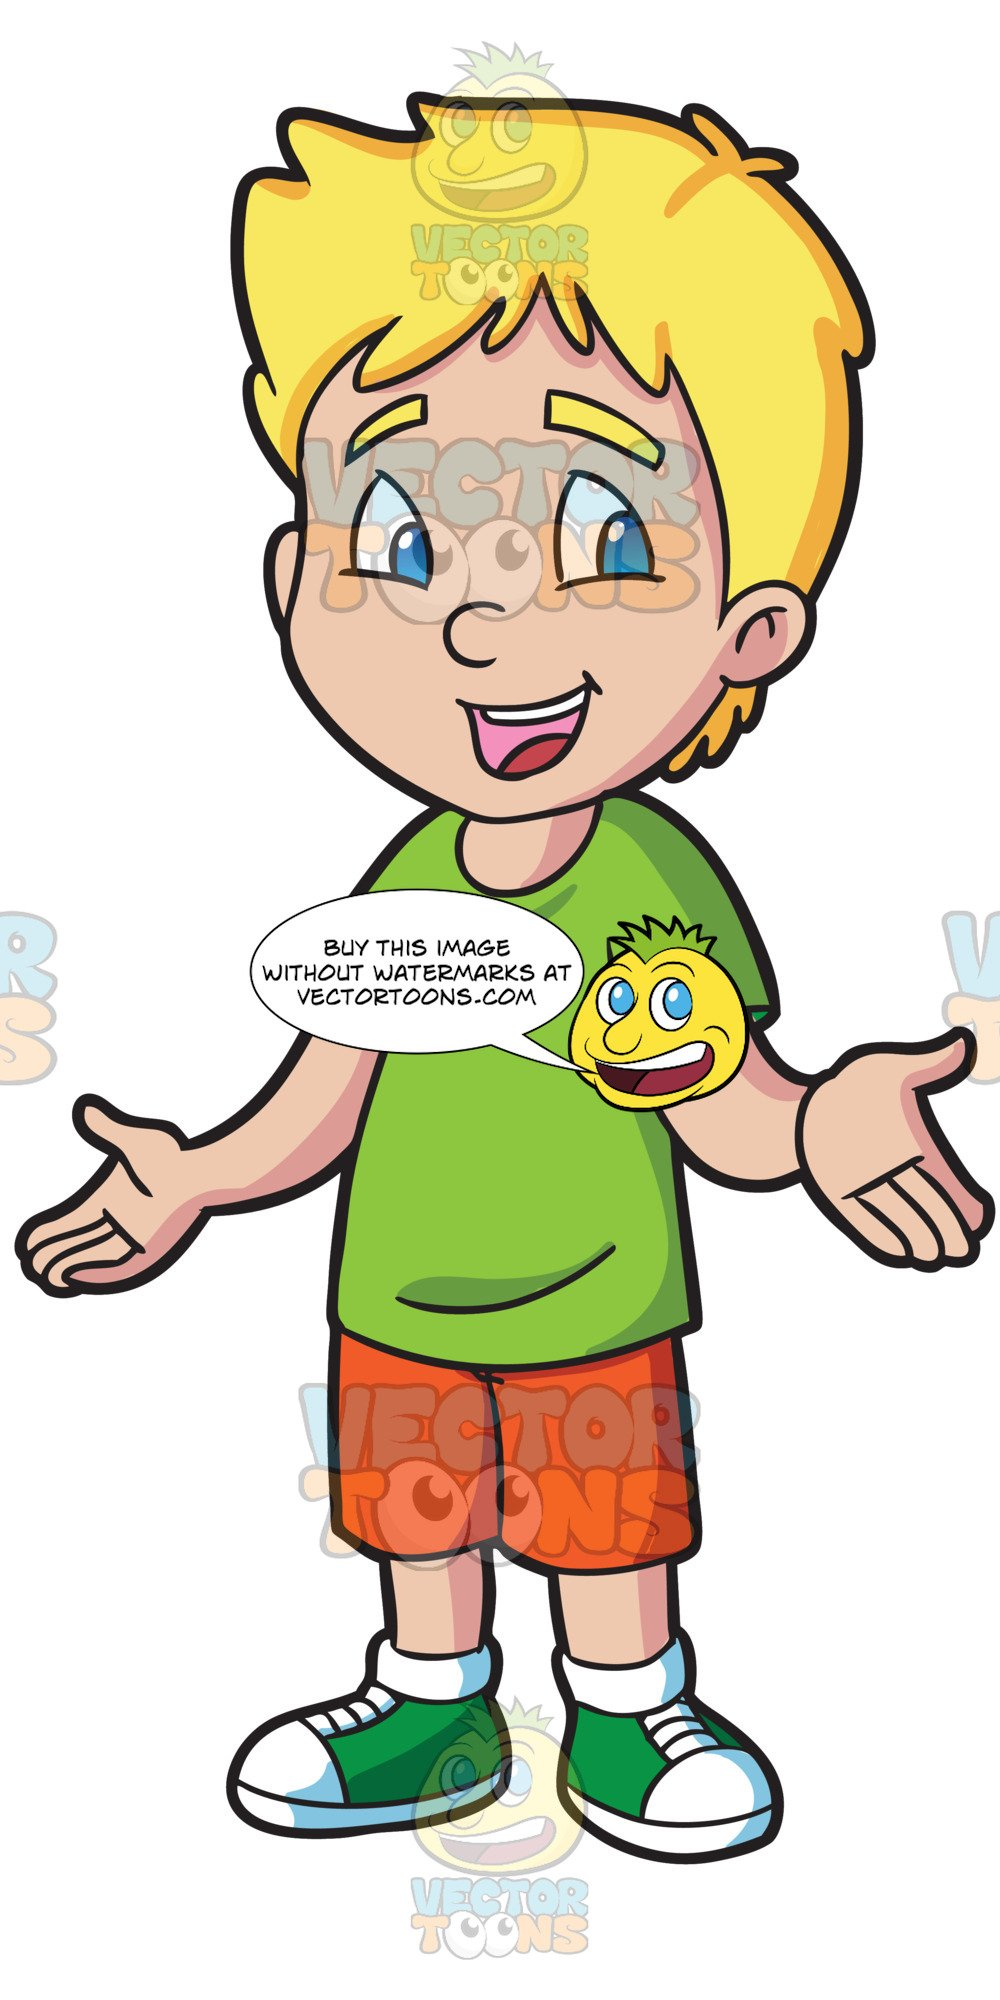 Understanding kind warm clipart clip art royalty free A Male Primary School Student Looking Friendly And Warm clip art royalty free